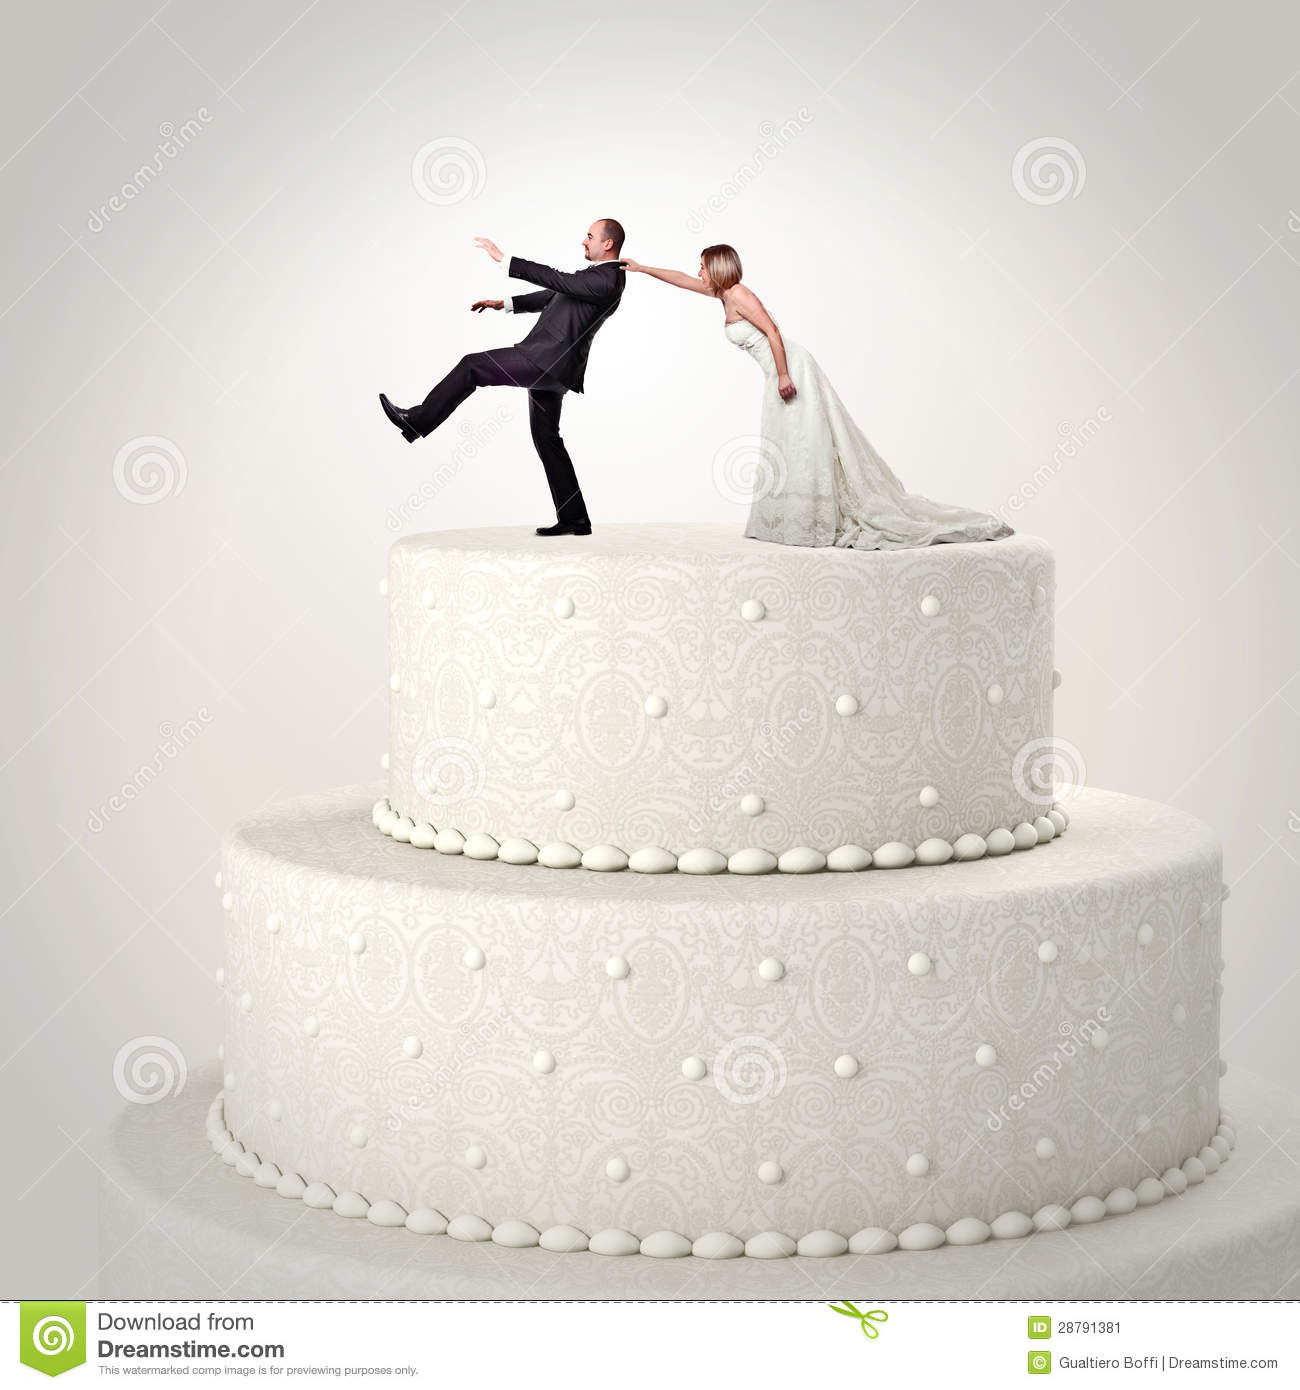 funny wedding cakes images wedding cake stock image image of together food 14580